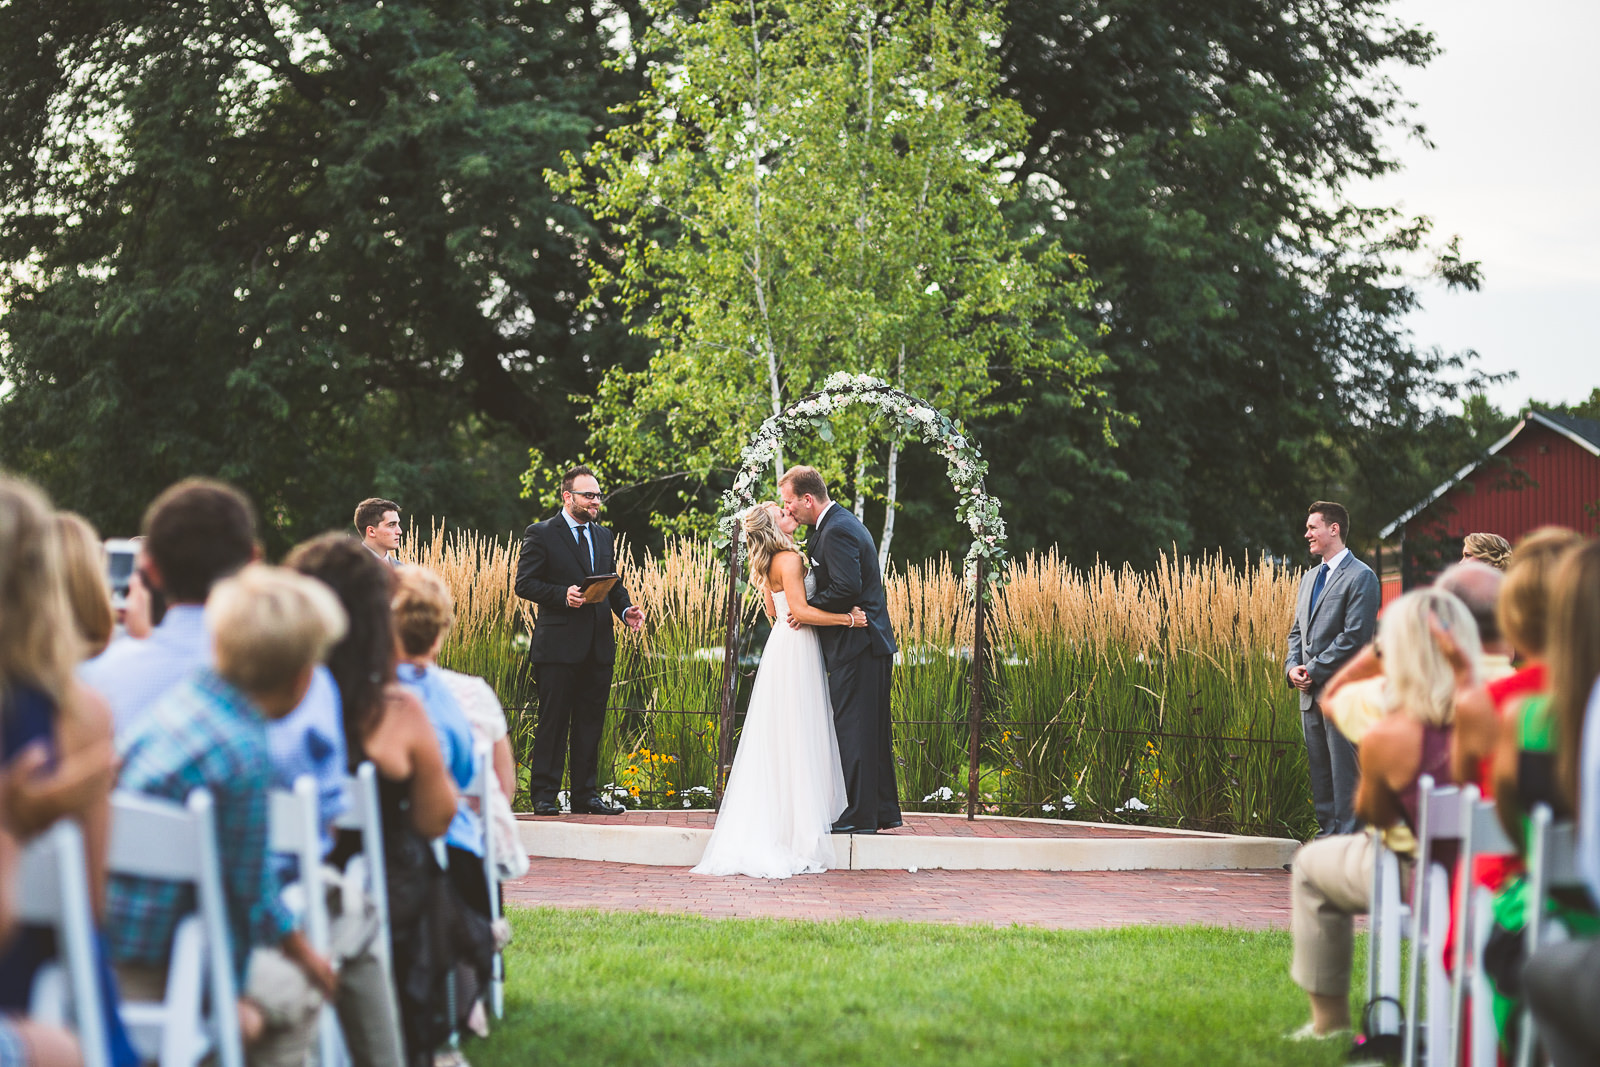 44 first kiss at wedding - Karen + Scott // Fishermens Inn Wedding Photographer Elburn Illinois